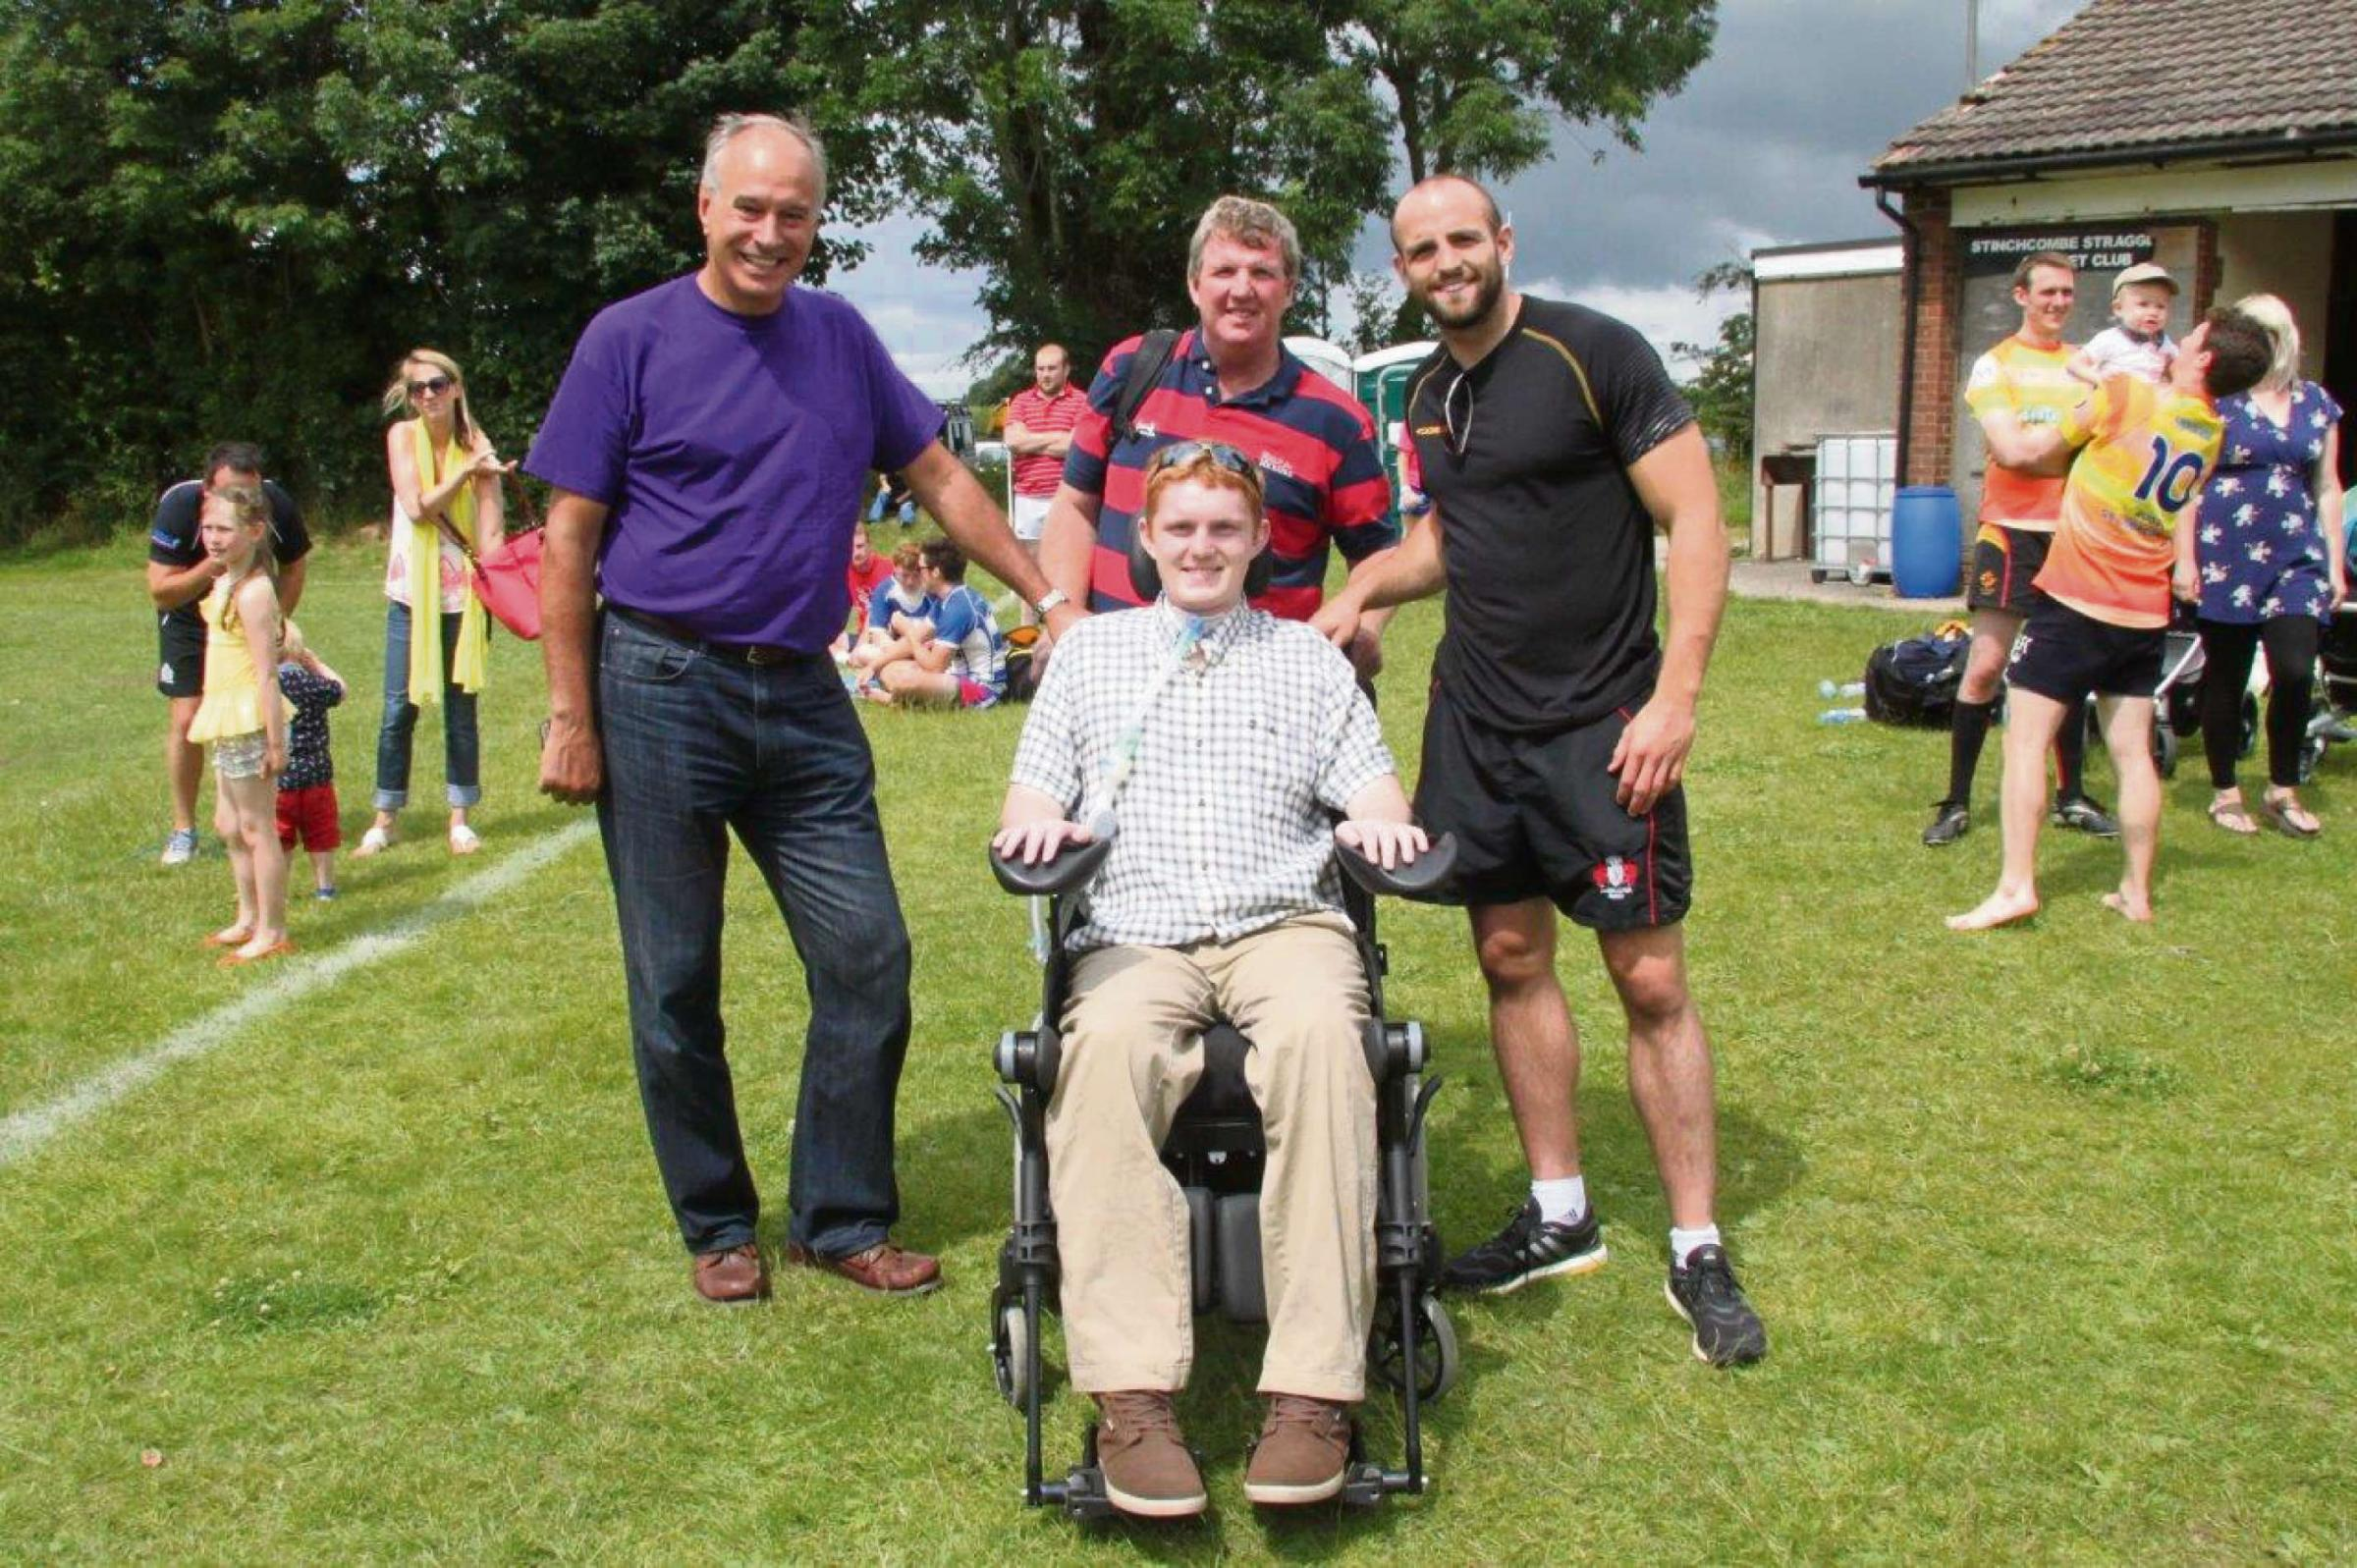 TOUCH RUGBY: Dursley RFC tournament raises more than £5000 for injured player Rob Camm and Matt Hampson Foundation